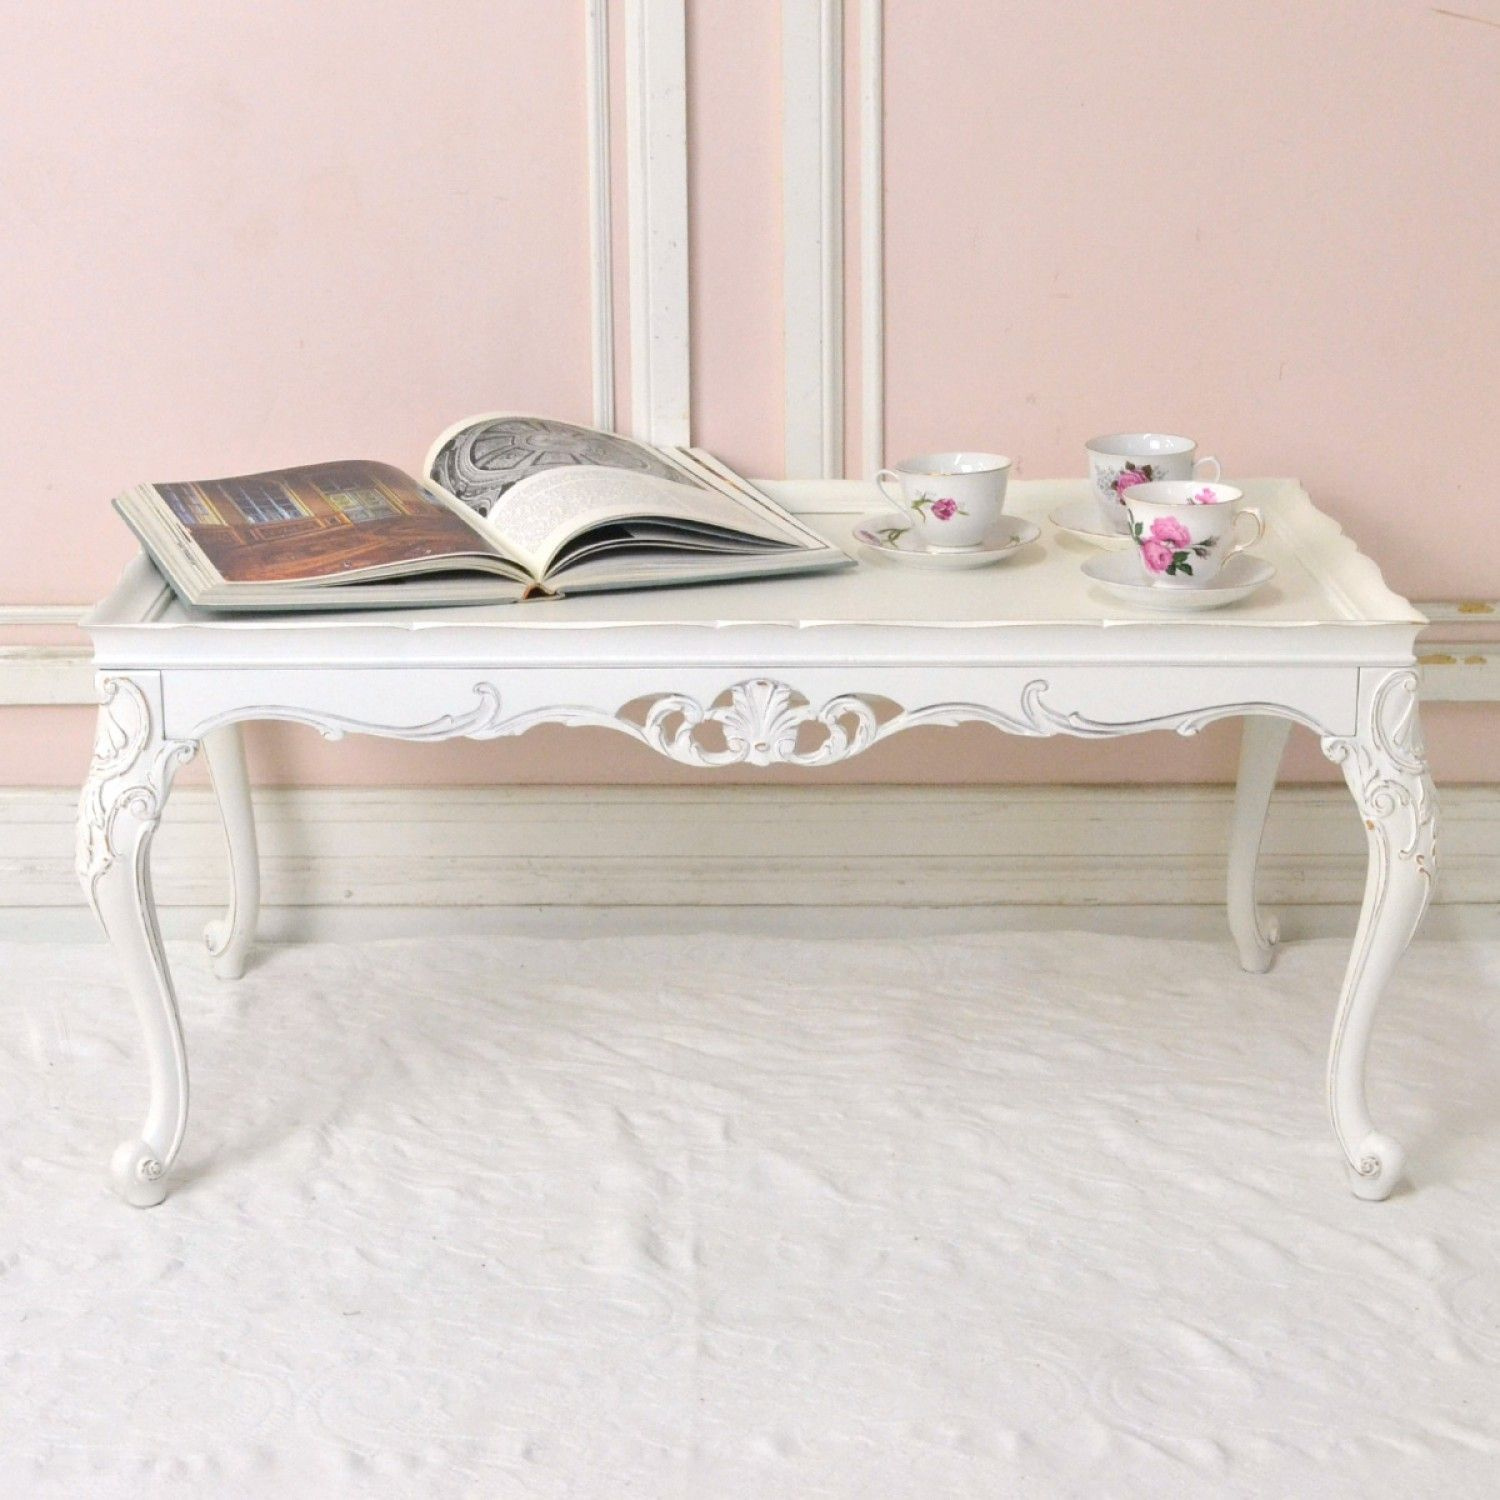 White ornate coffee table 45500 thebellacottage shabbychic white ornate coffee table 45500 thebellacottage shabbychic ooak geotapseo Gallery